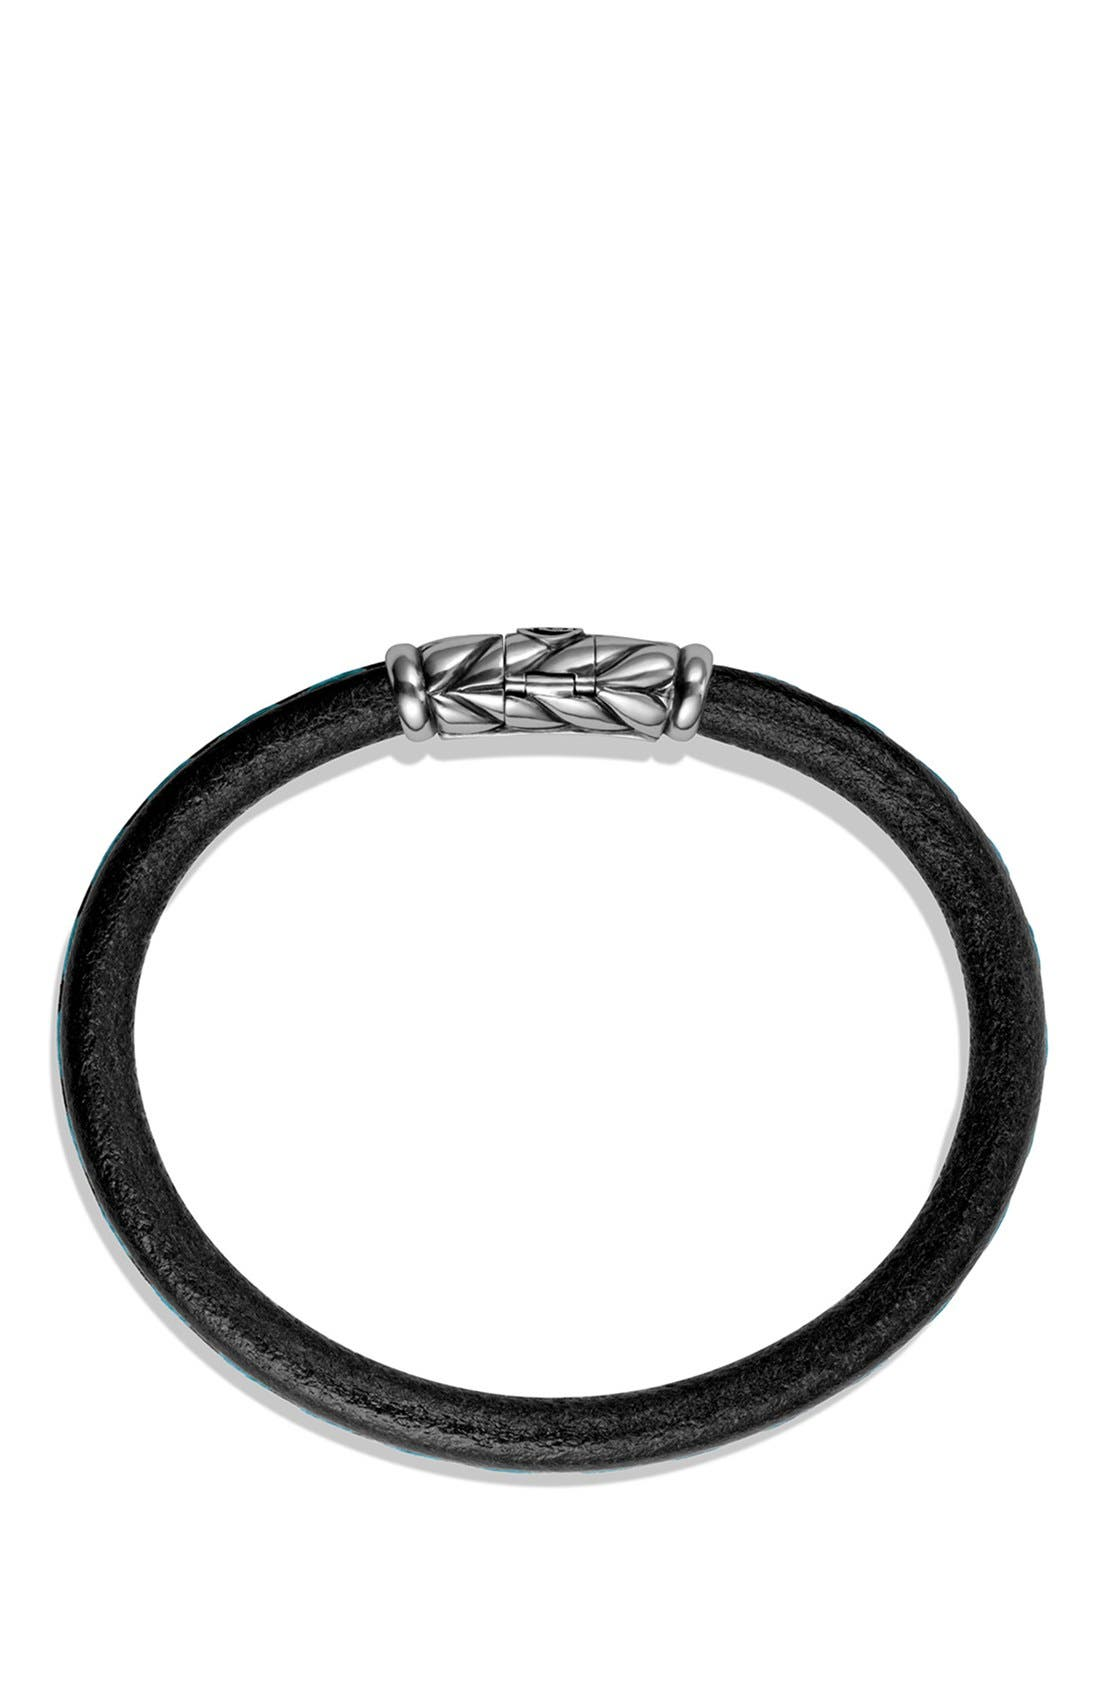 Alternate Image 2  - David Yurman 'Chevron' Leather Bracelet